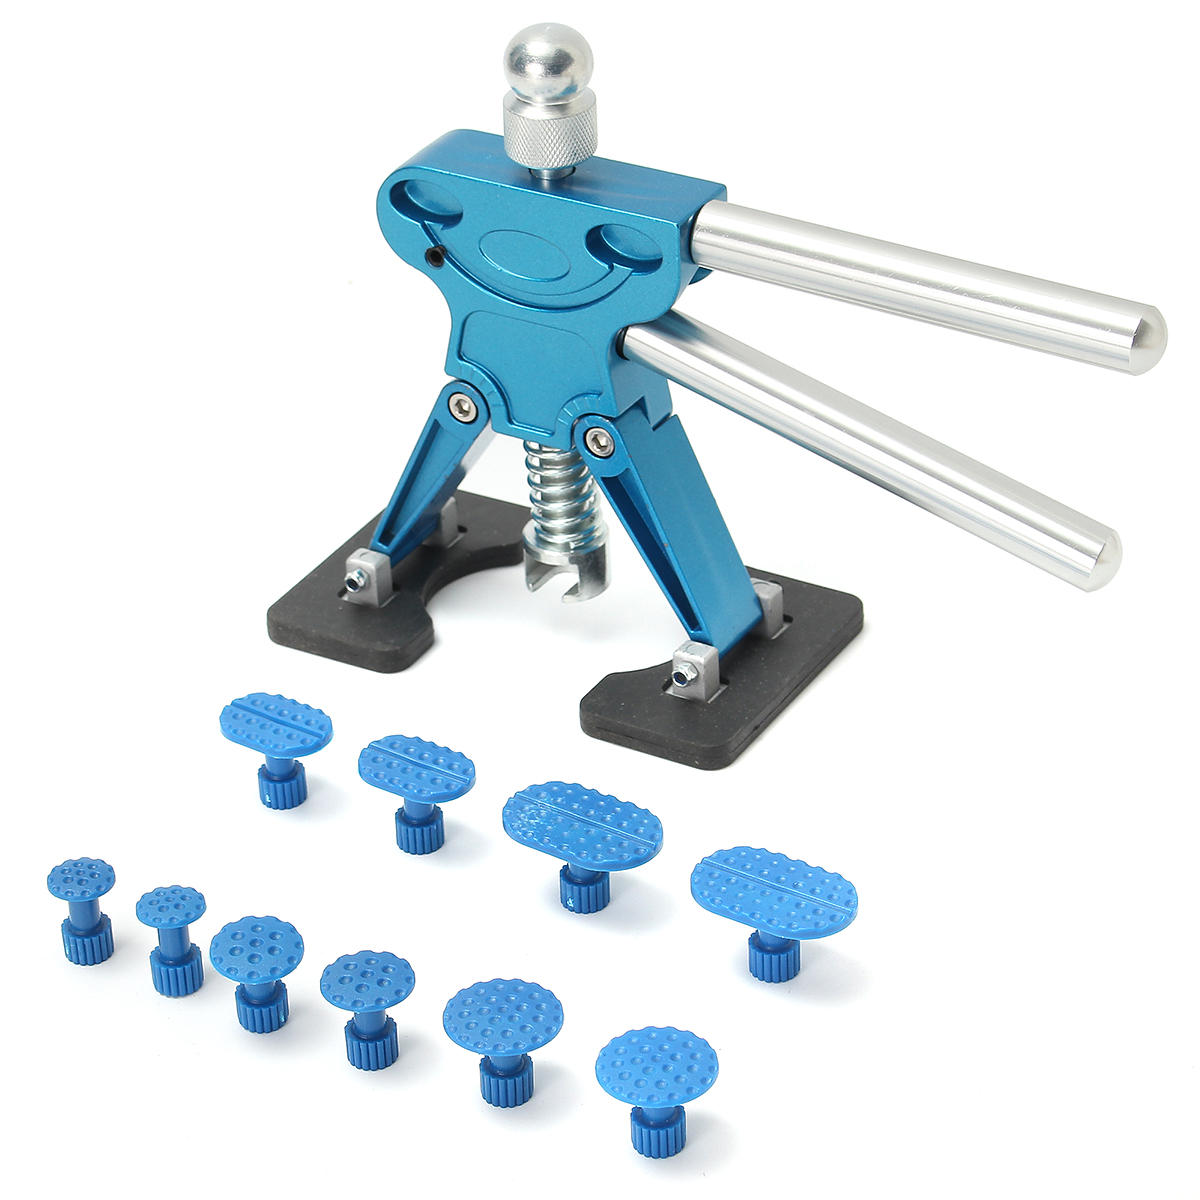 Useful PDR Lifter Glue Puller Tab Hail Removal Paintless Dent Repair Tools Kit